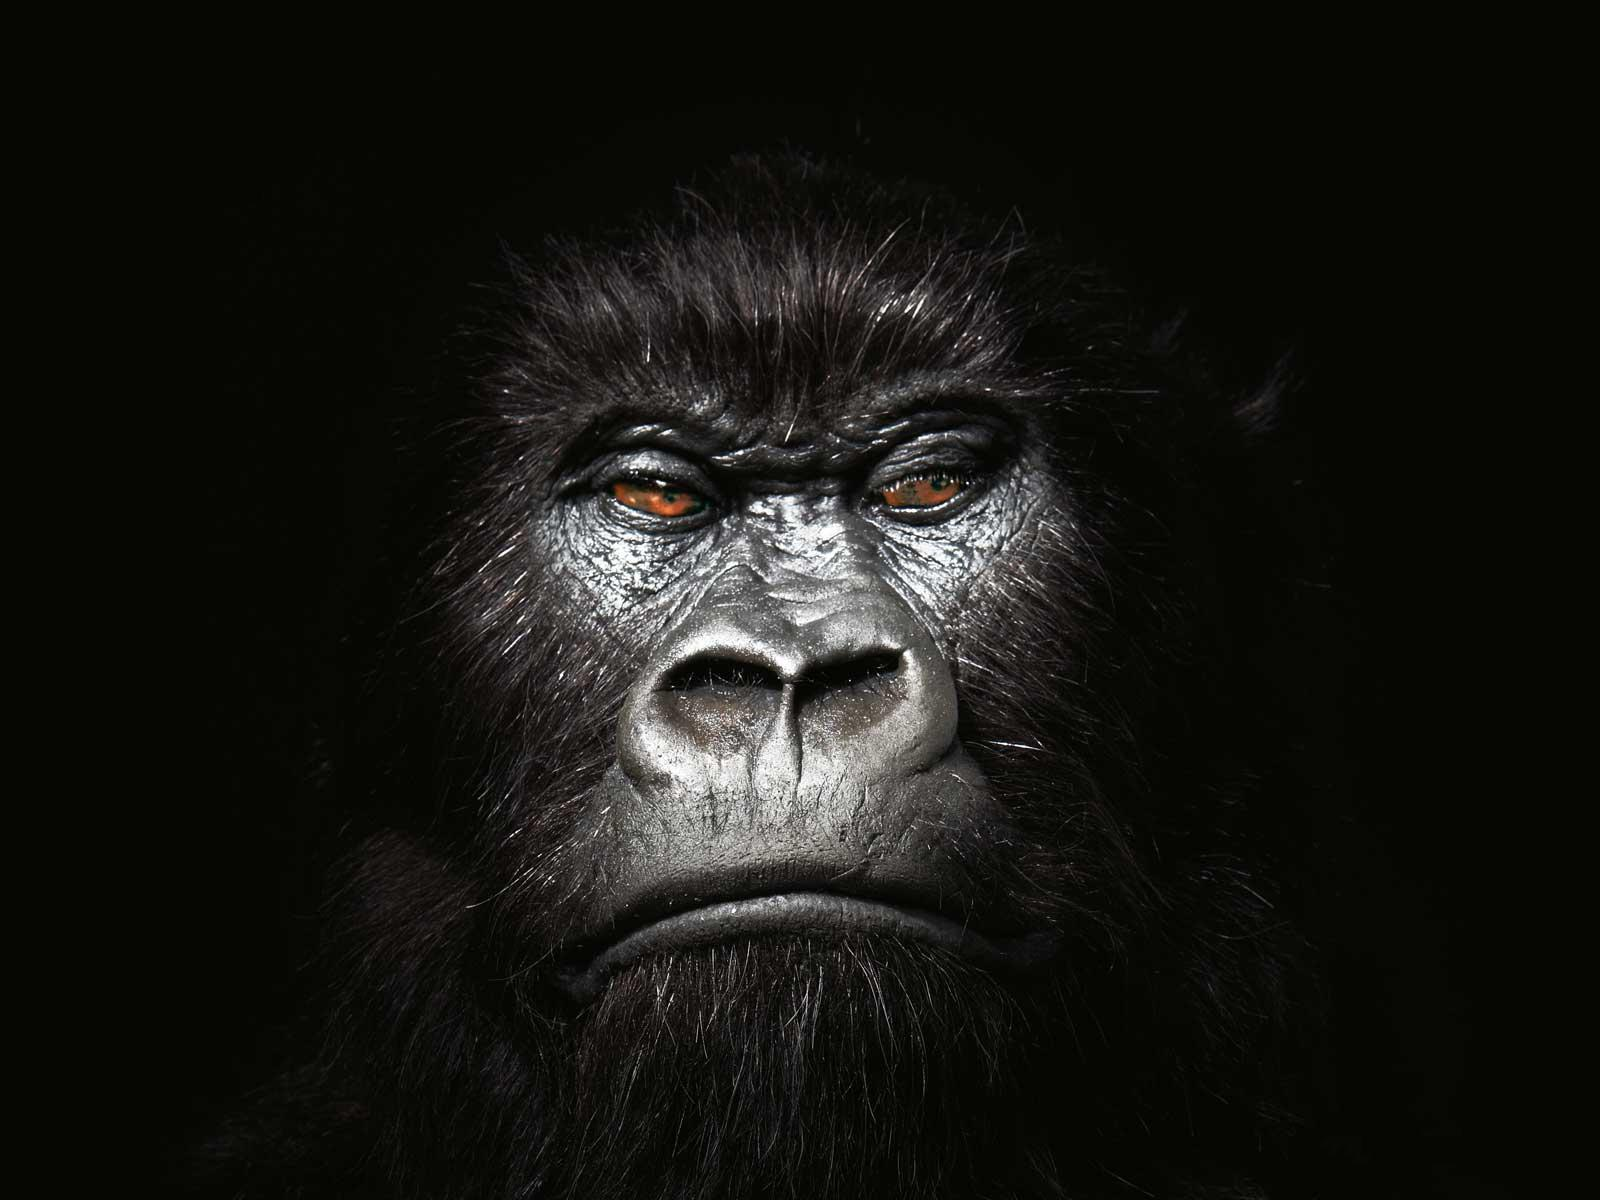 Gorilla Wallpapers 20